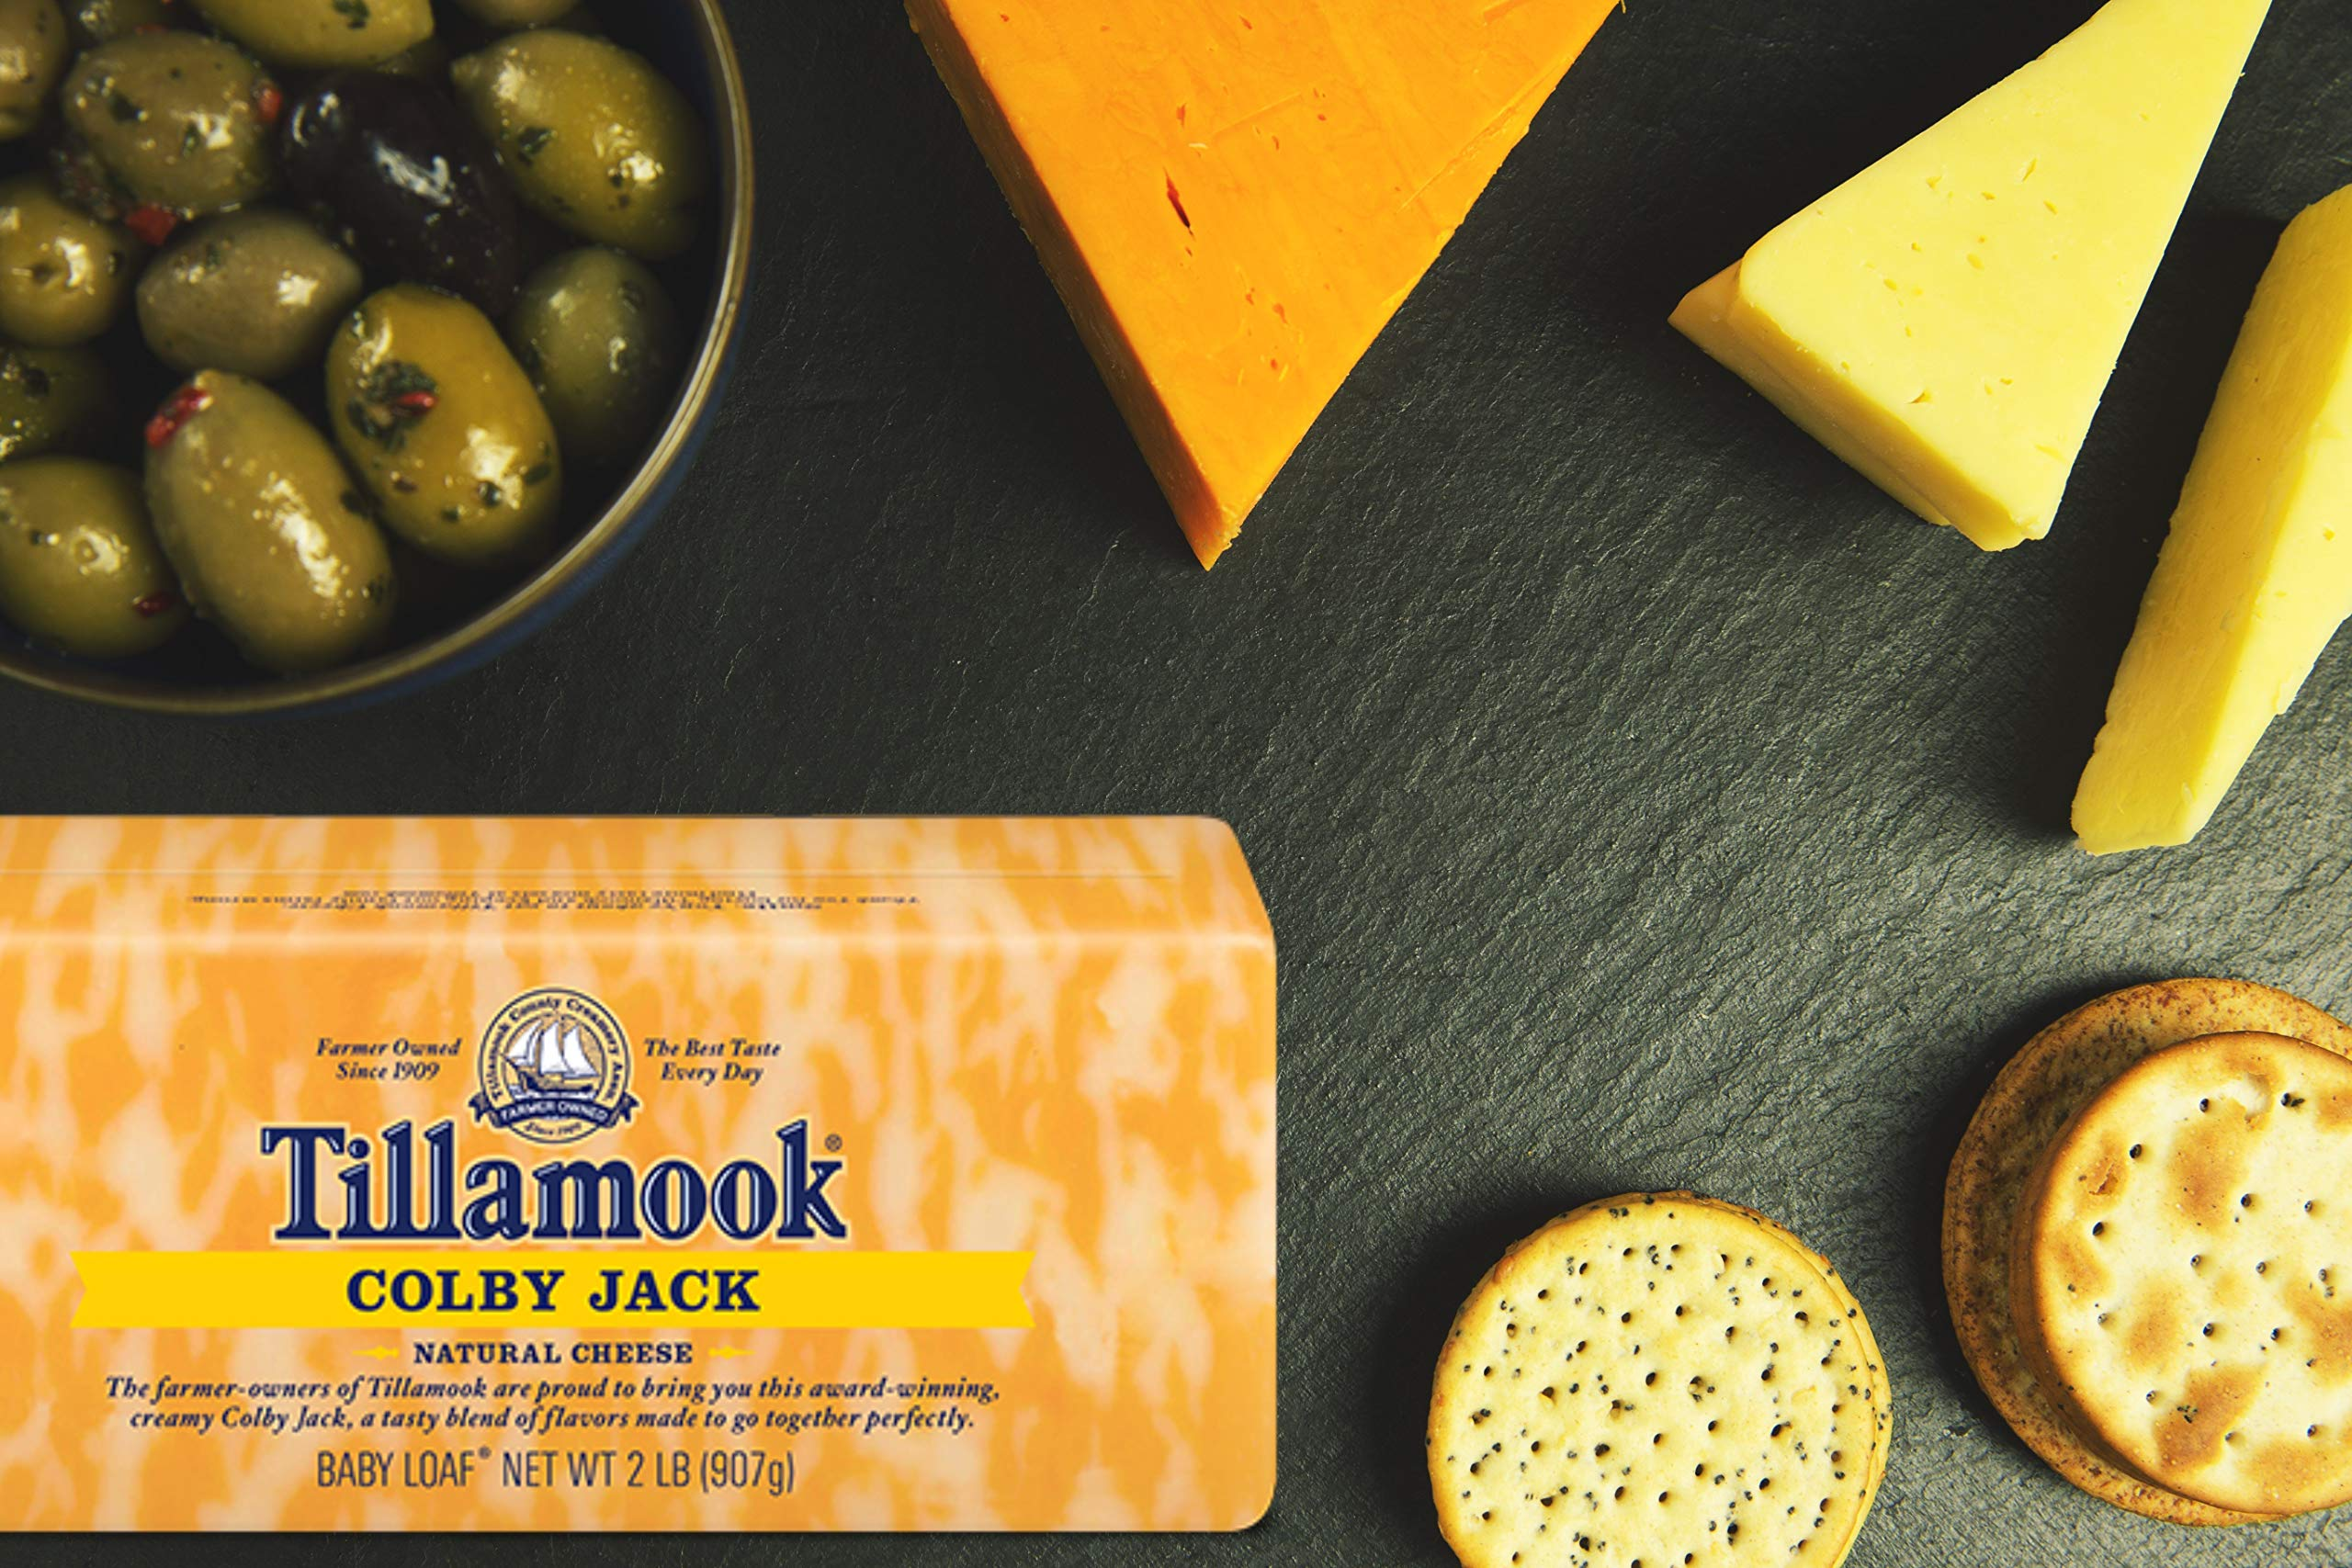 Pack of 2 Tillamook Colby Jack Cheese 2 lb Loaves